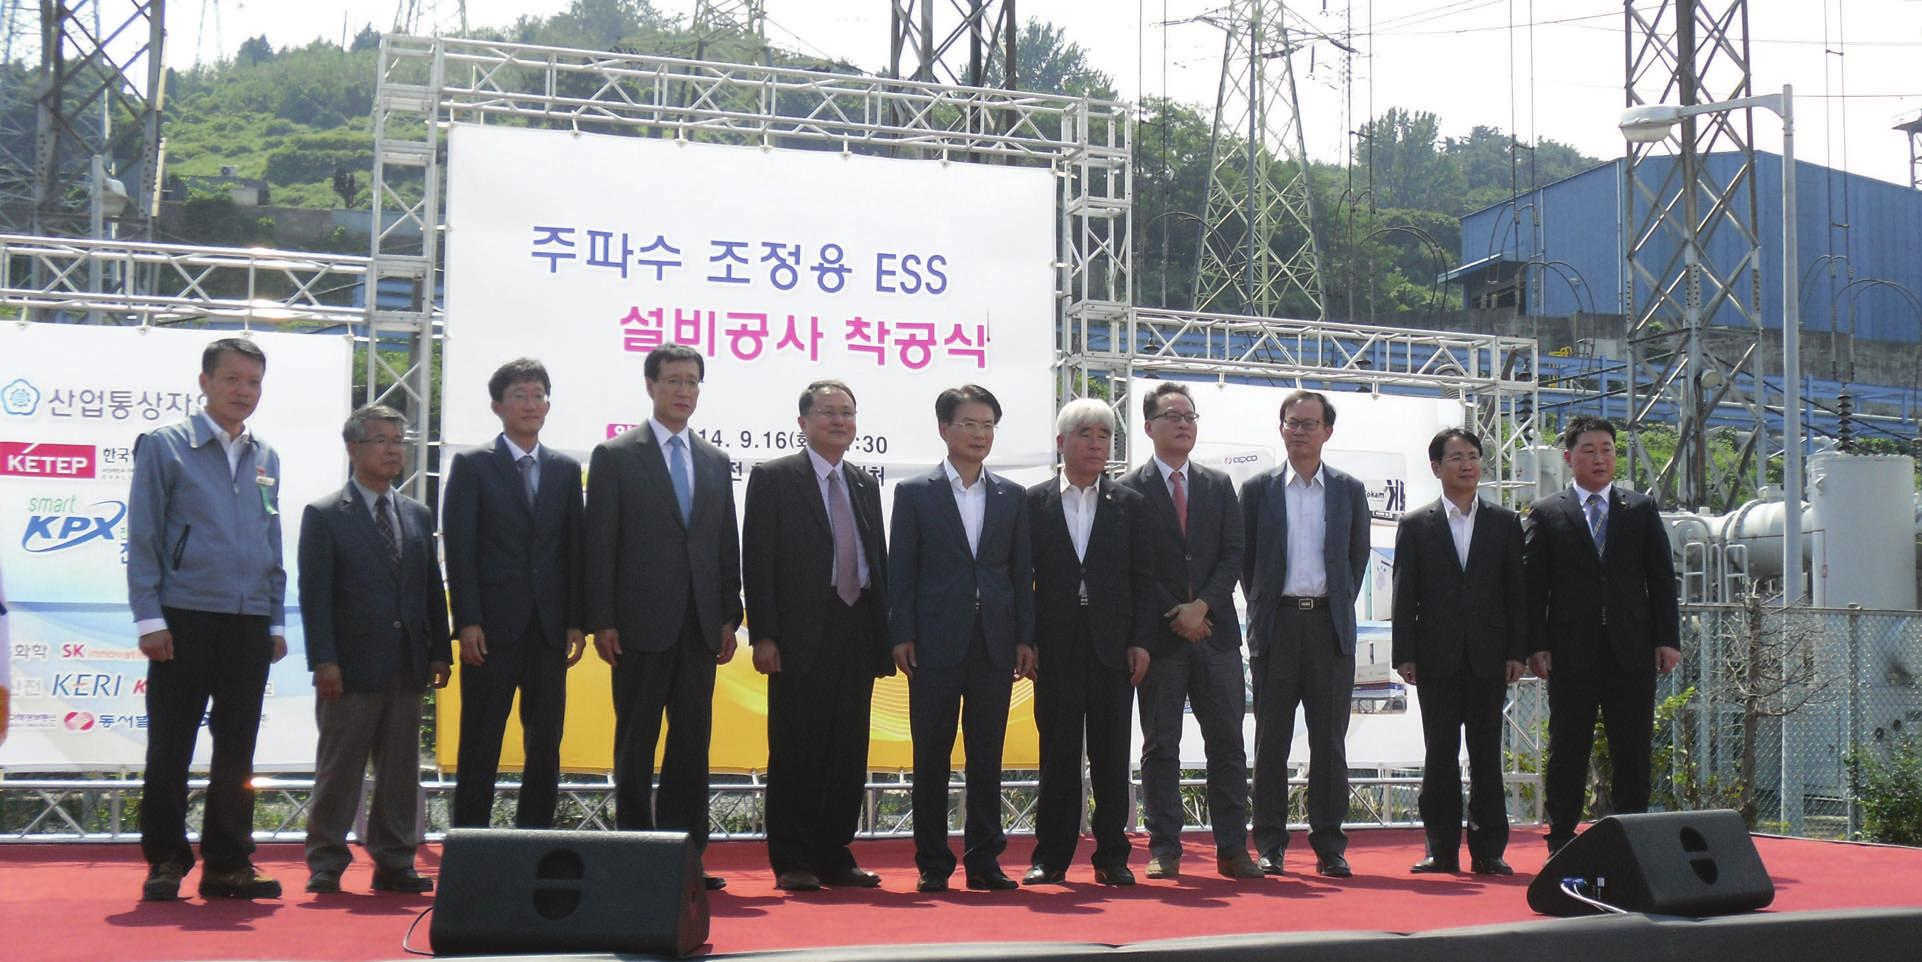 KPX held a groundbreaking ceremony to set up ESS facilities for frequency regulation.